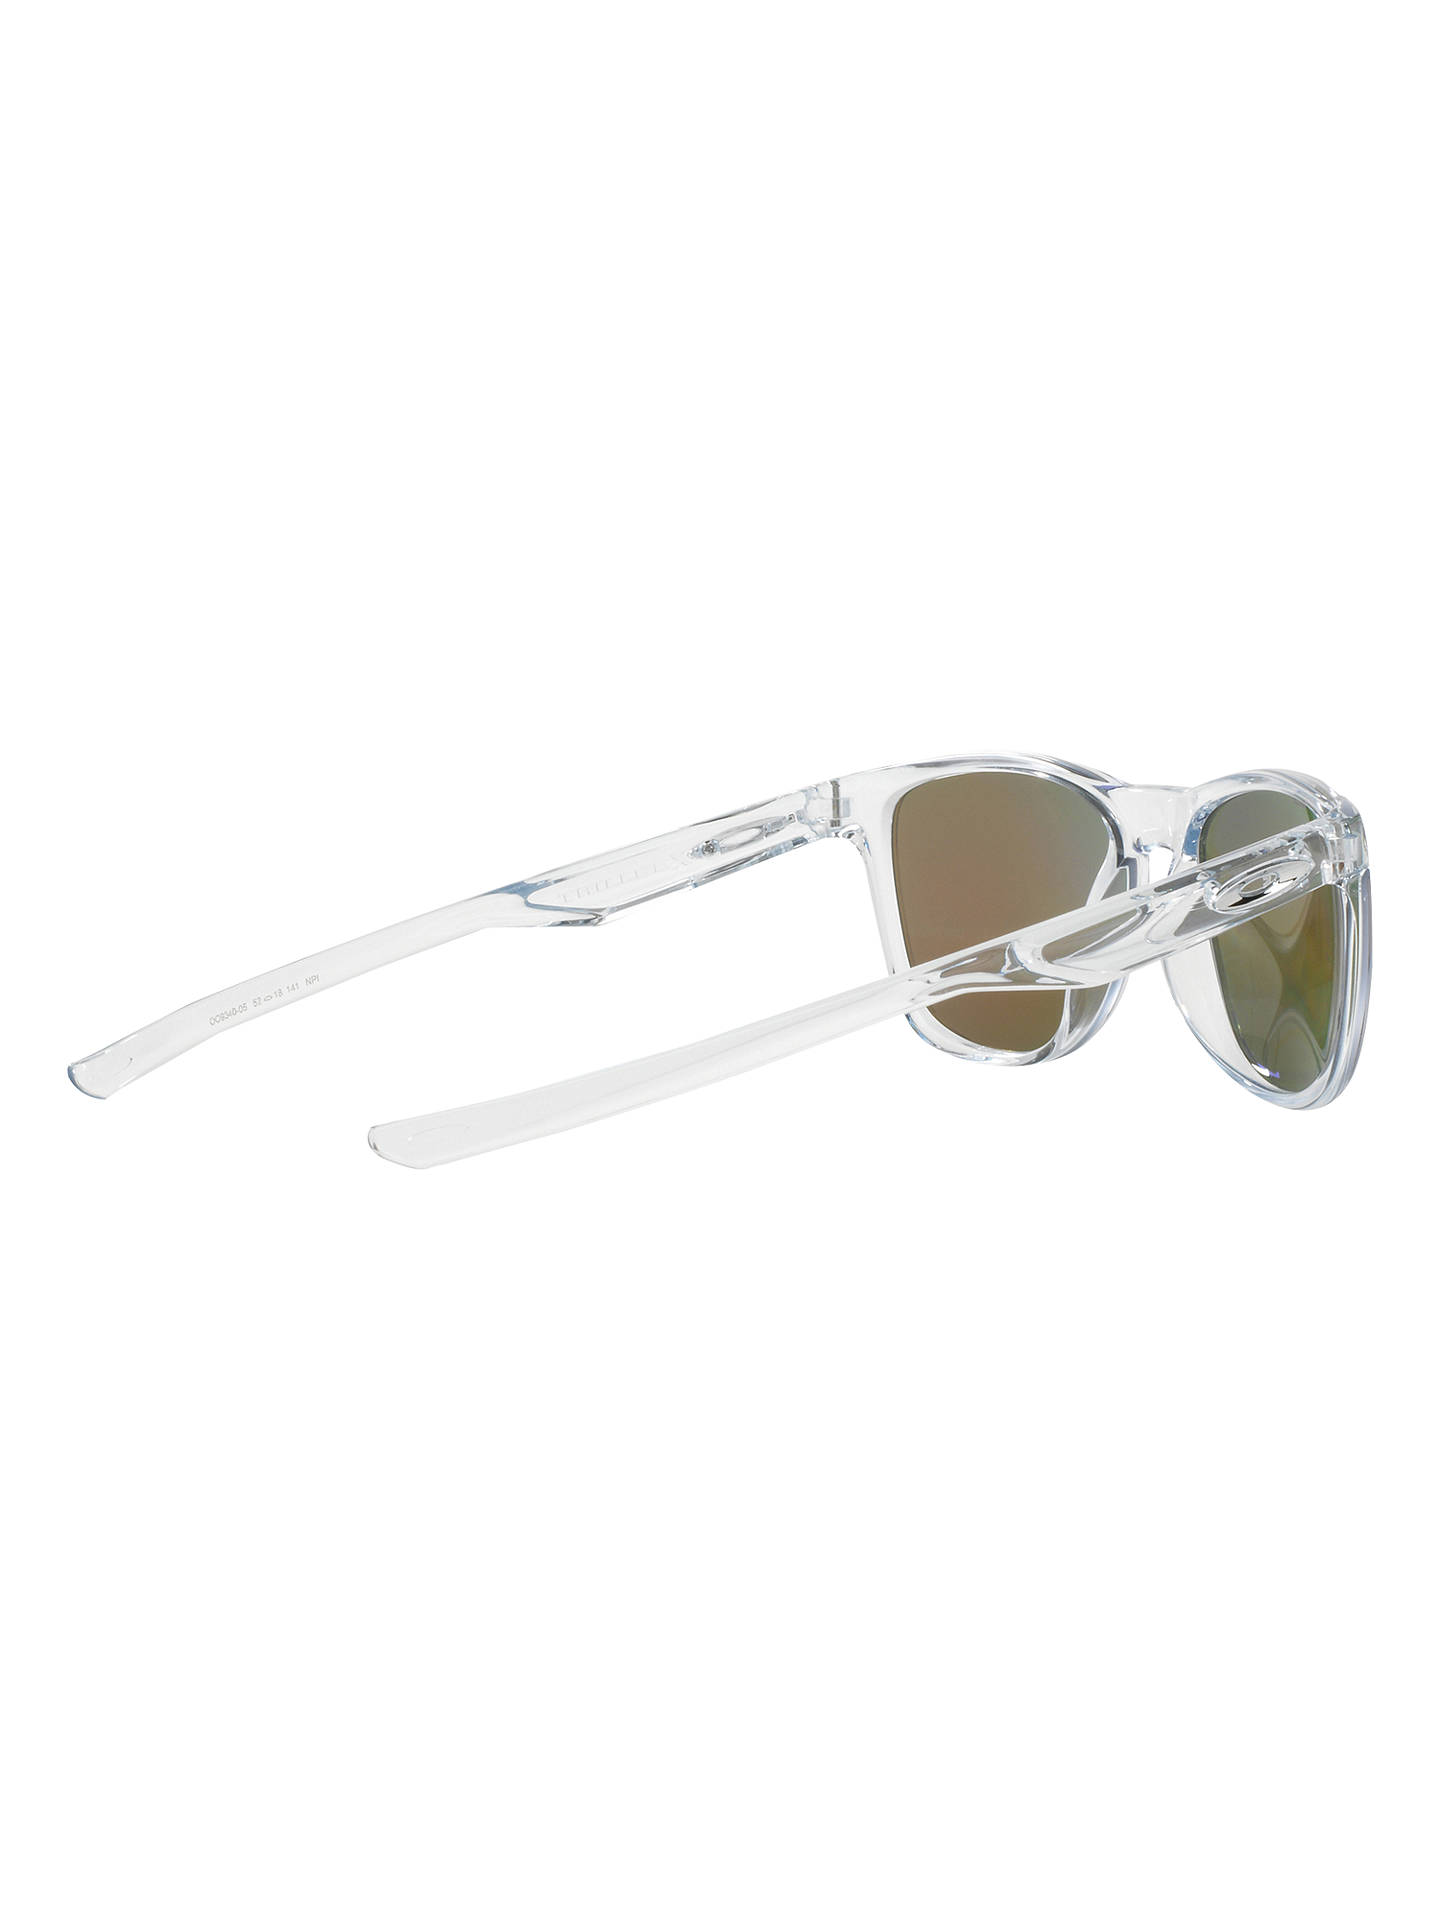 7ab479d78f Oakley OO9340 Trillbe X Polarised Square Sunglasses at John Lewis ...